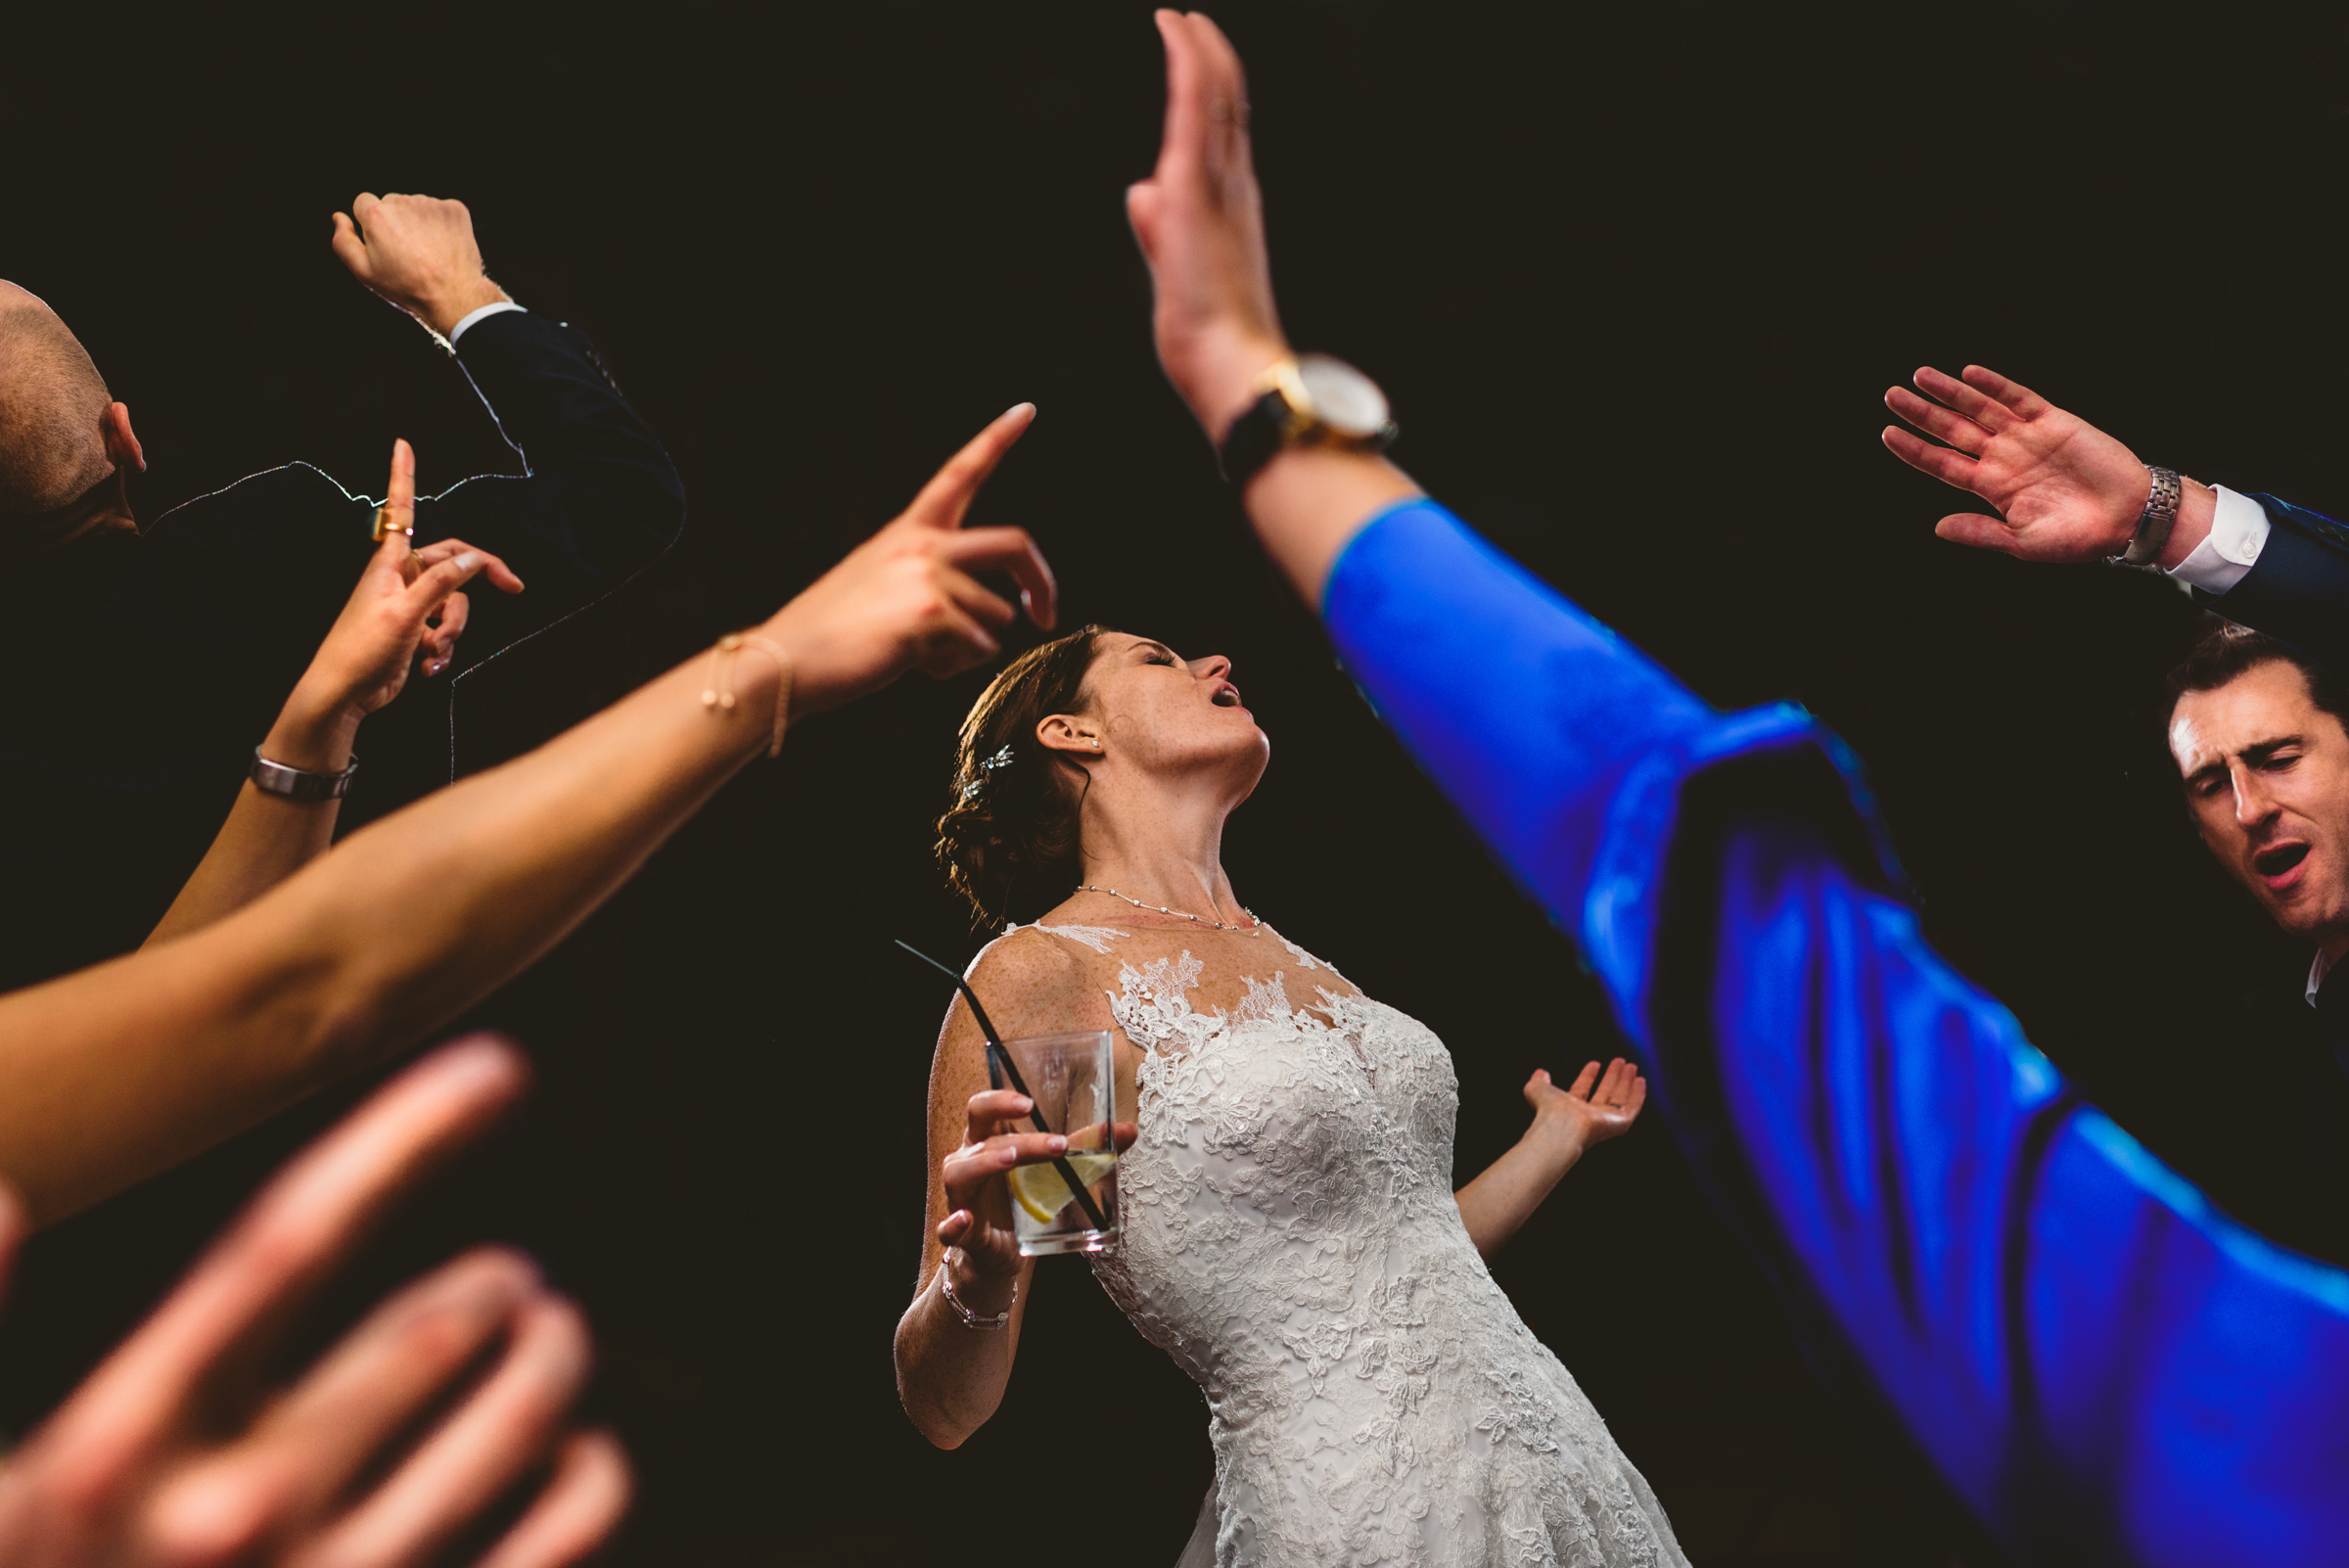 Bride sings surrounded by friends with hands in the air - photo by MIKI Studios